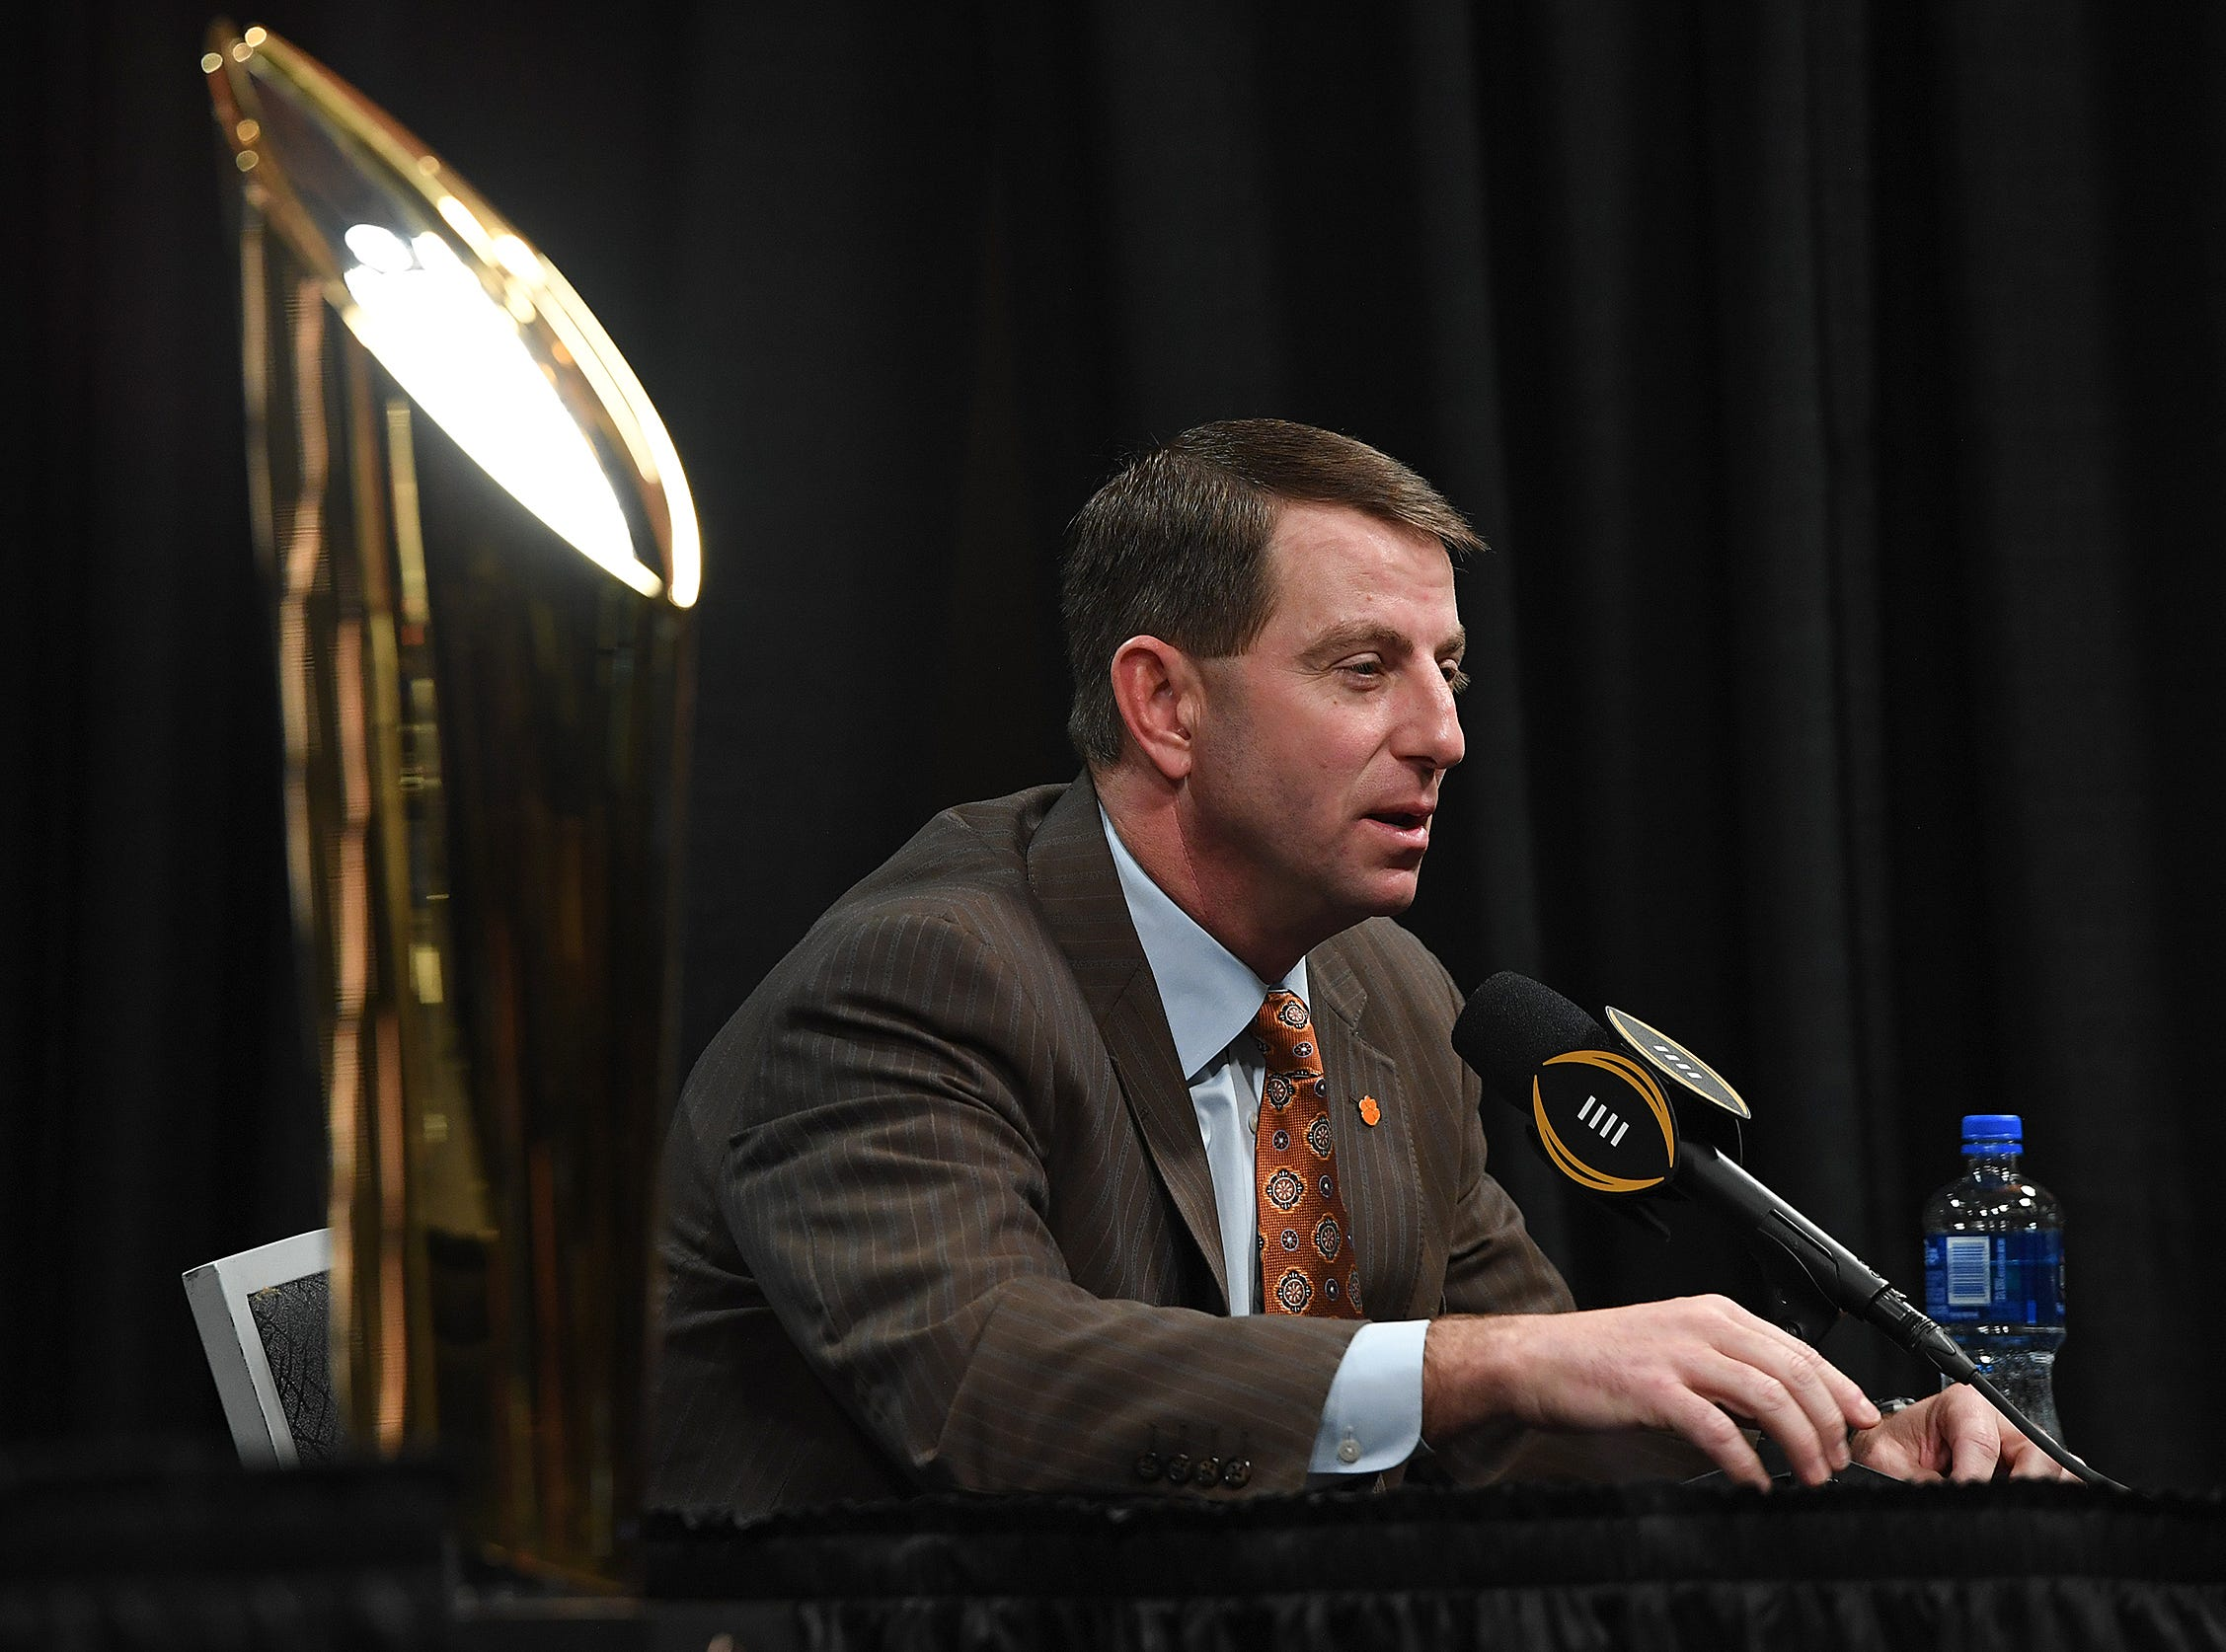 Clemson head coach Dabo Swinney answers questions during the College Football Playoff Championship coaches press conference in San Jose, California January 6, 2019.